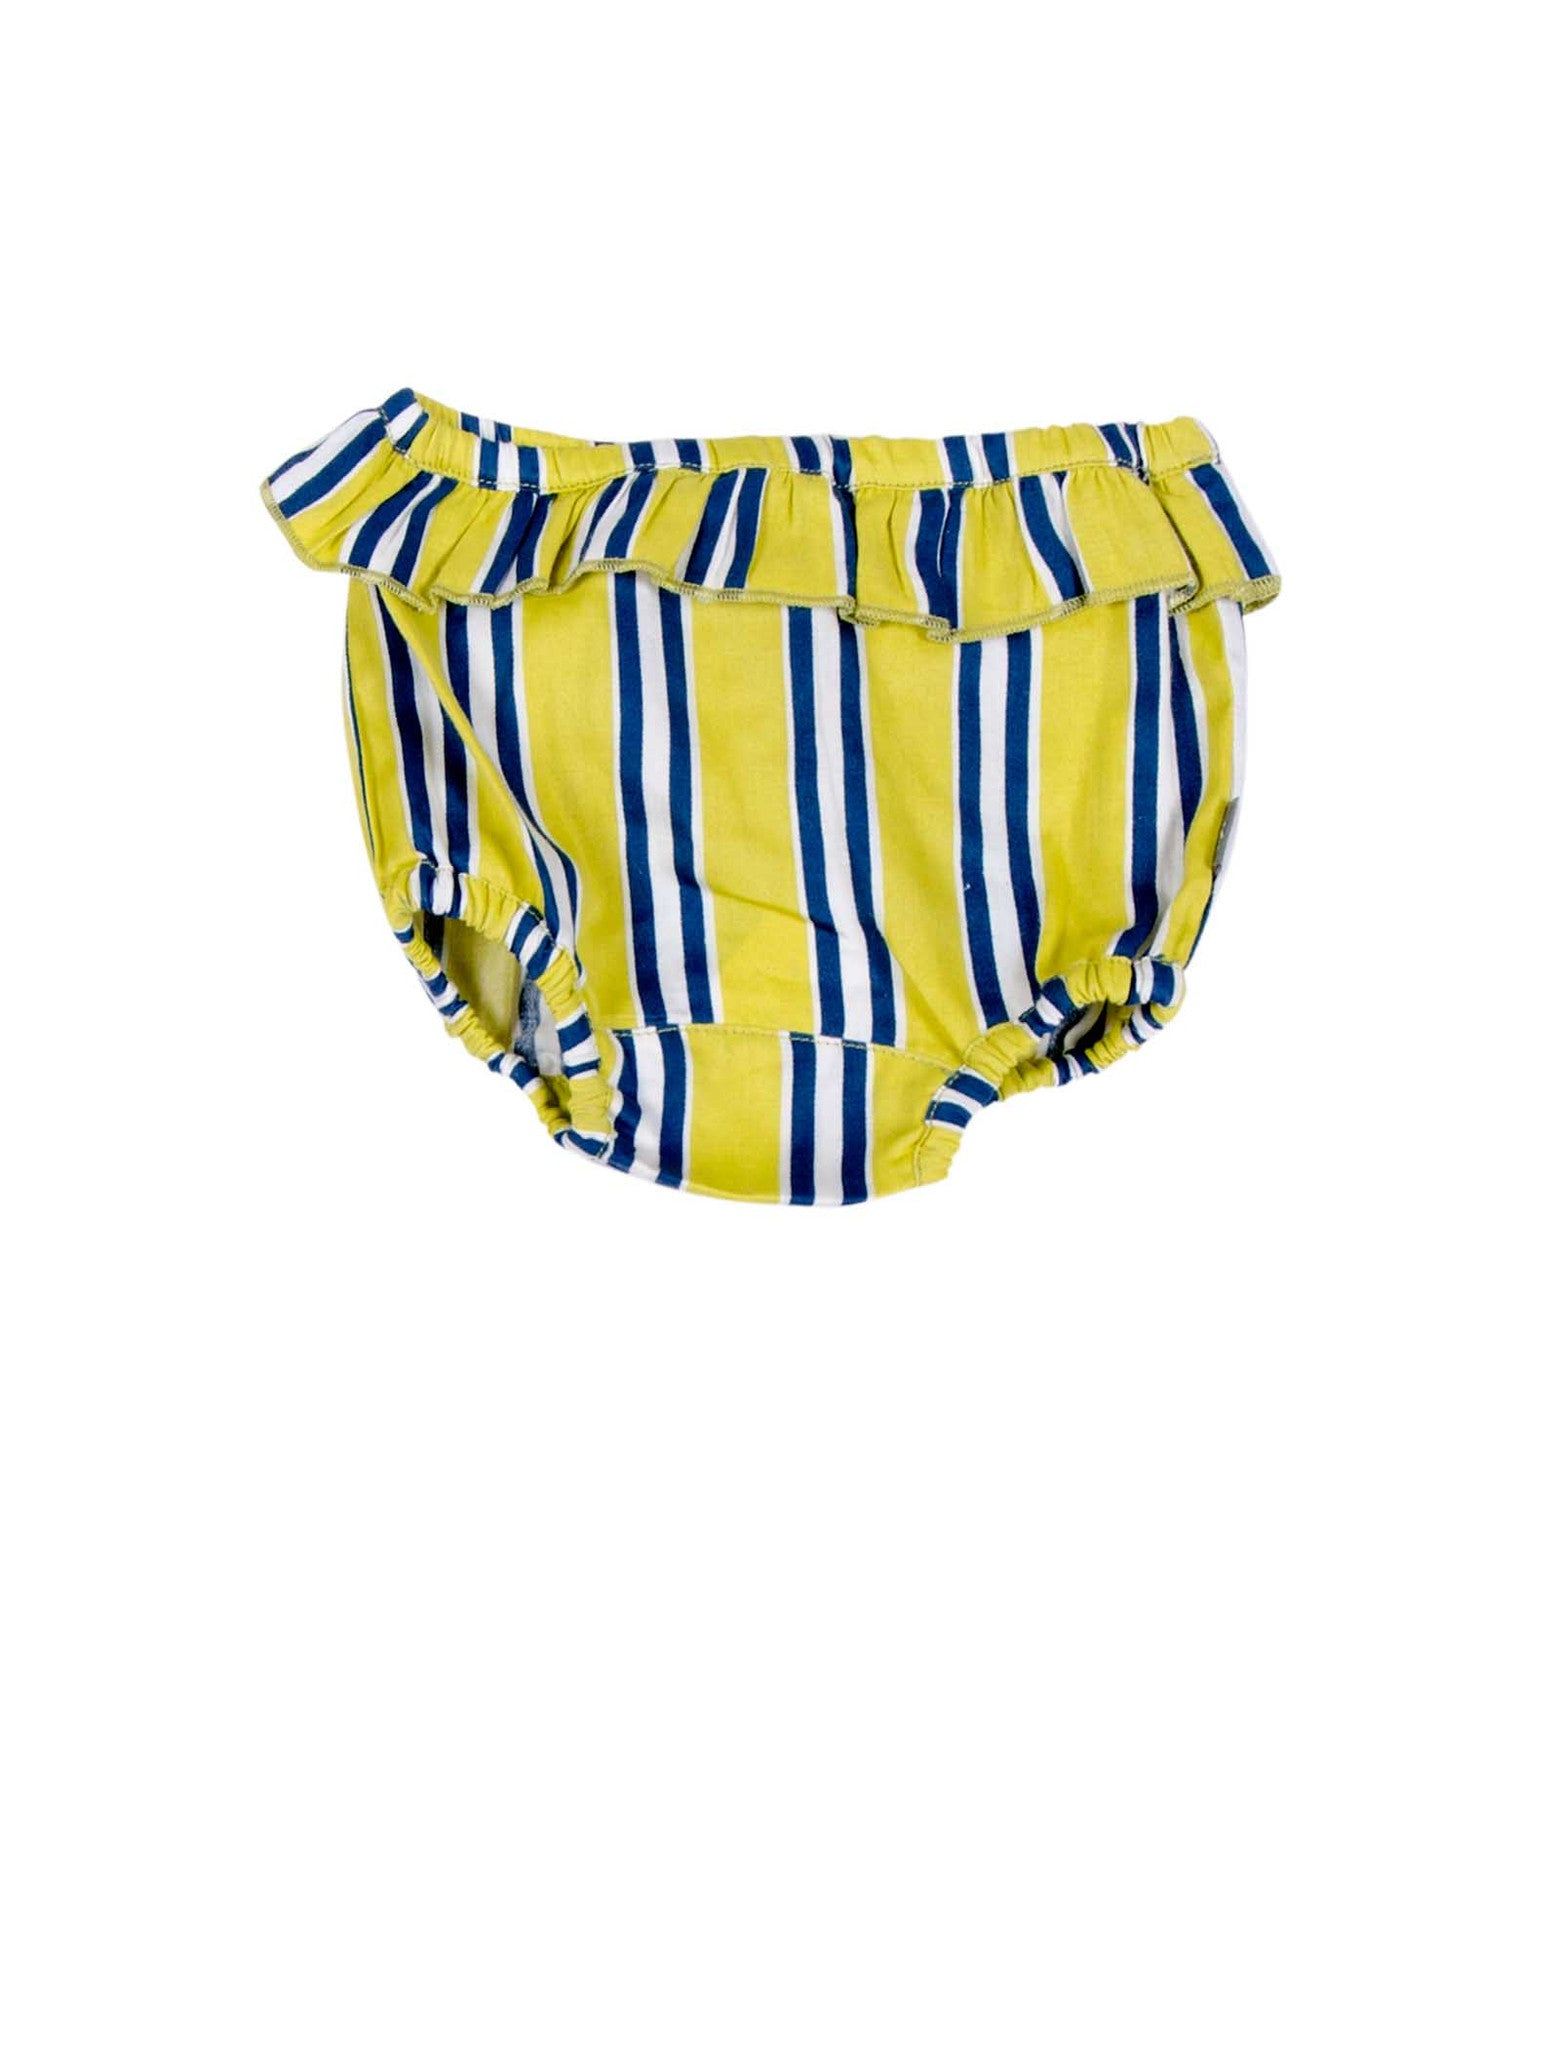 KIDSCASE CANDY STRIPED ORGANIC BLOOMERS